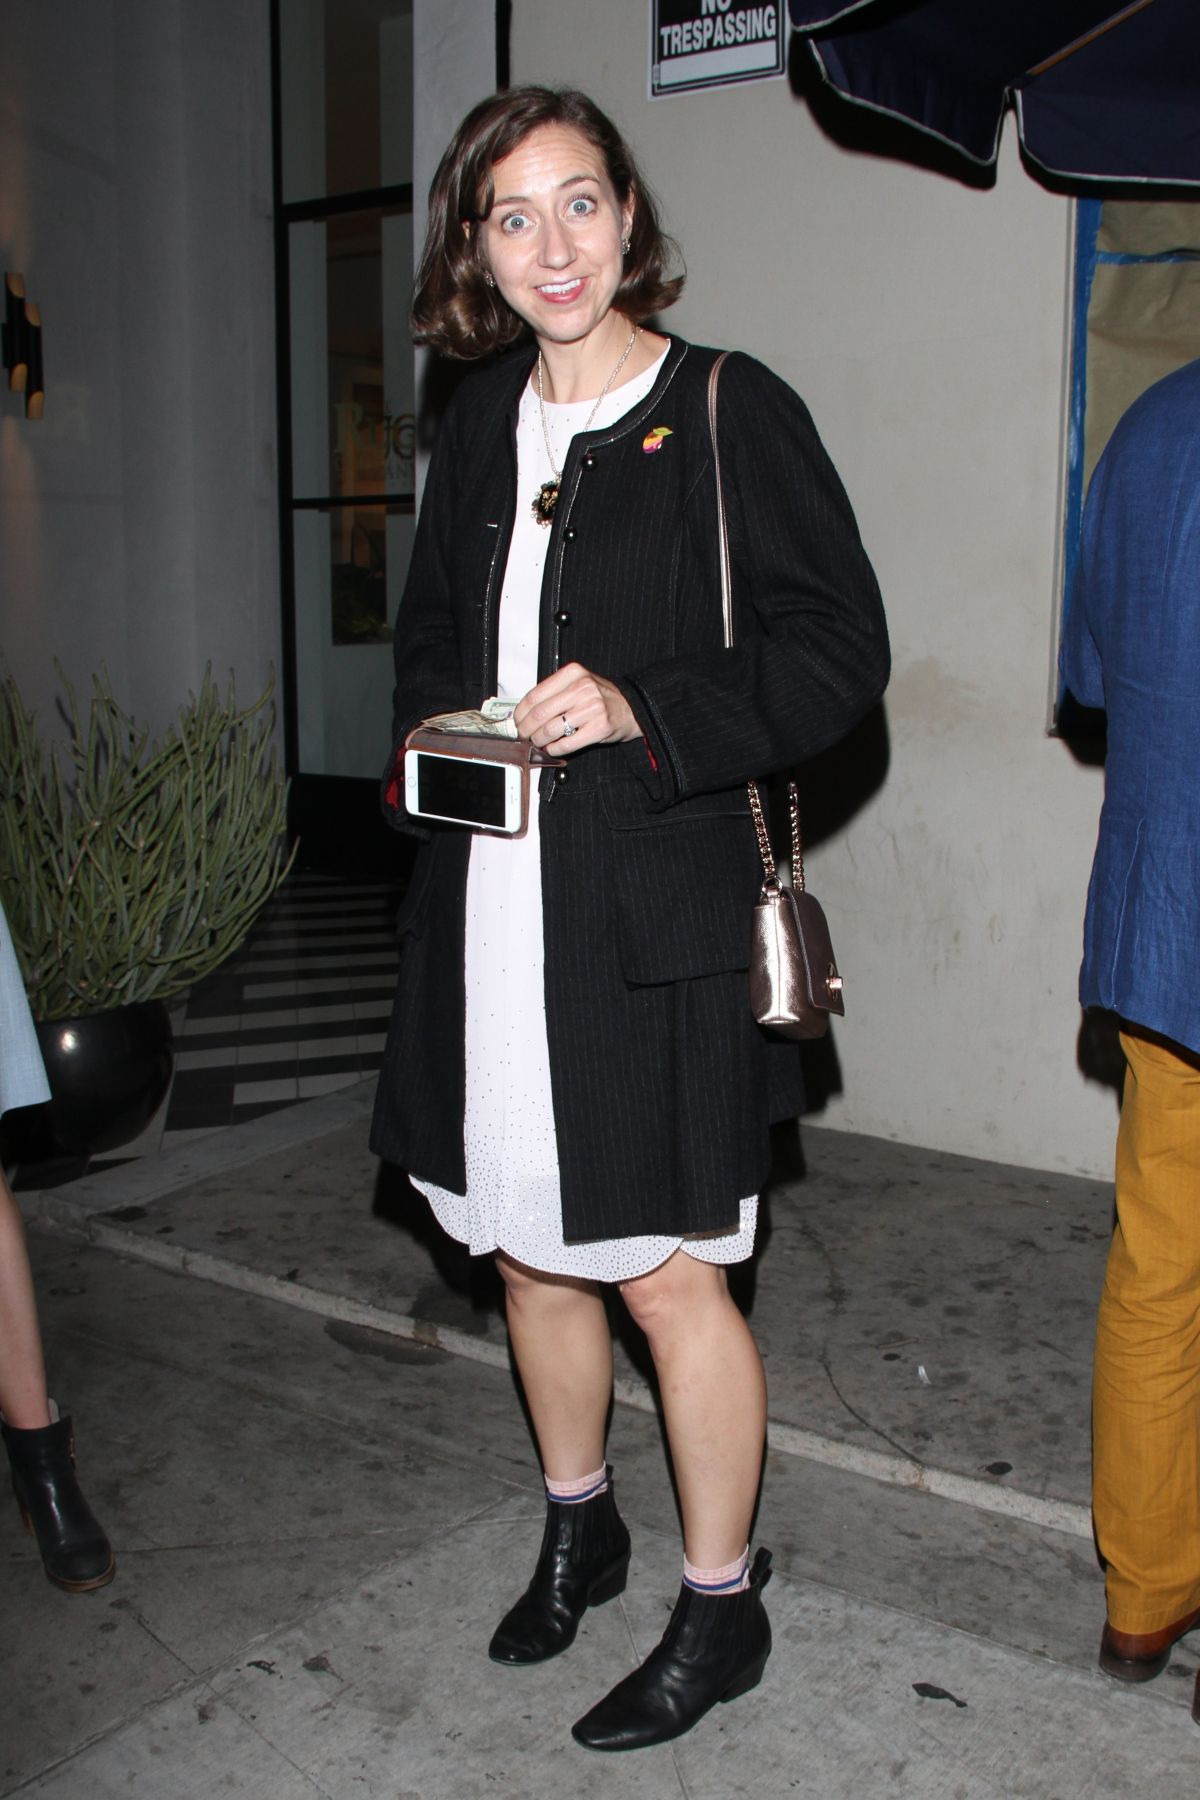 KRISTEN SCHAAL at Catch LA in West Hollywood 06/13/2017